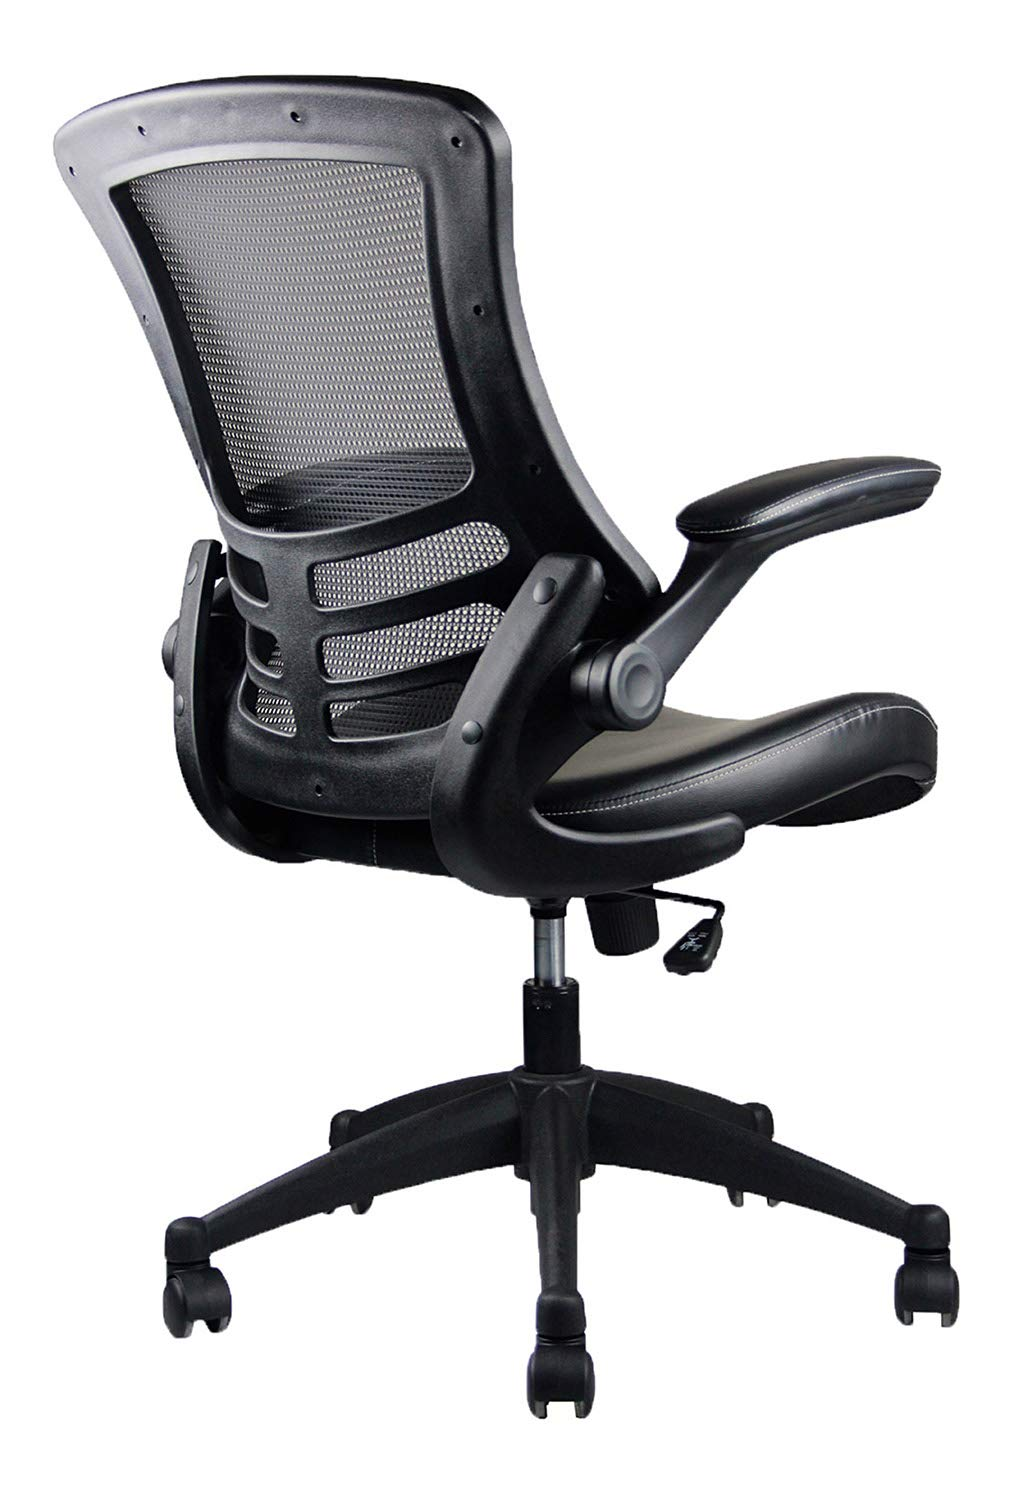 Tremendous Stylish Mid Back Mesh Office Chair With Adjustable Arms Color Black Home Interior And Landscaping Transignezvosmurscom